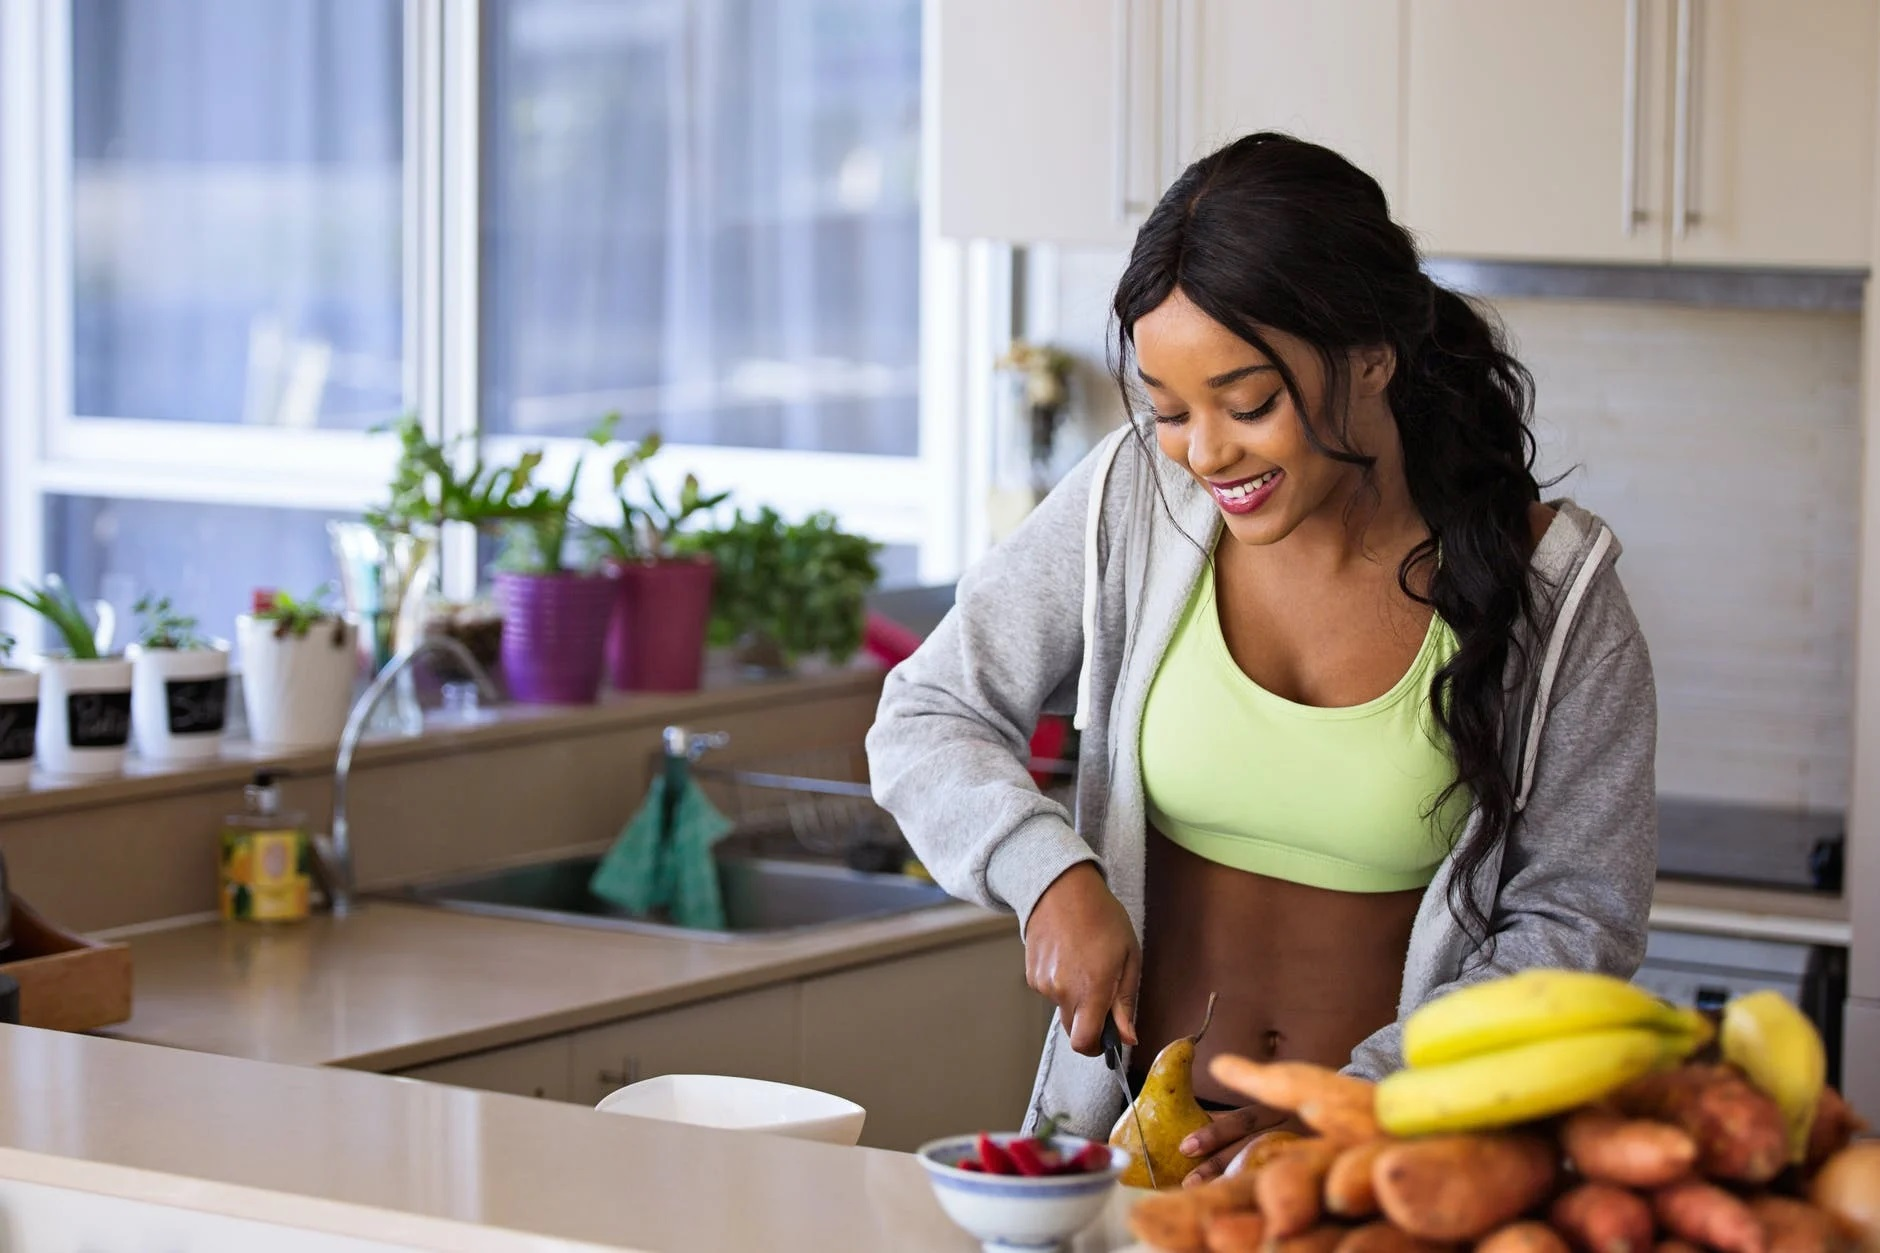 5 Key Tips for a Better, Healthier Start to Your Day